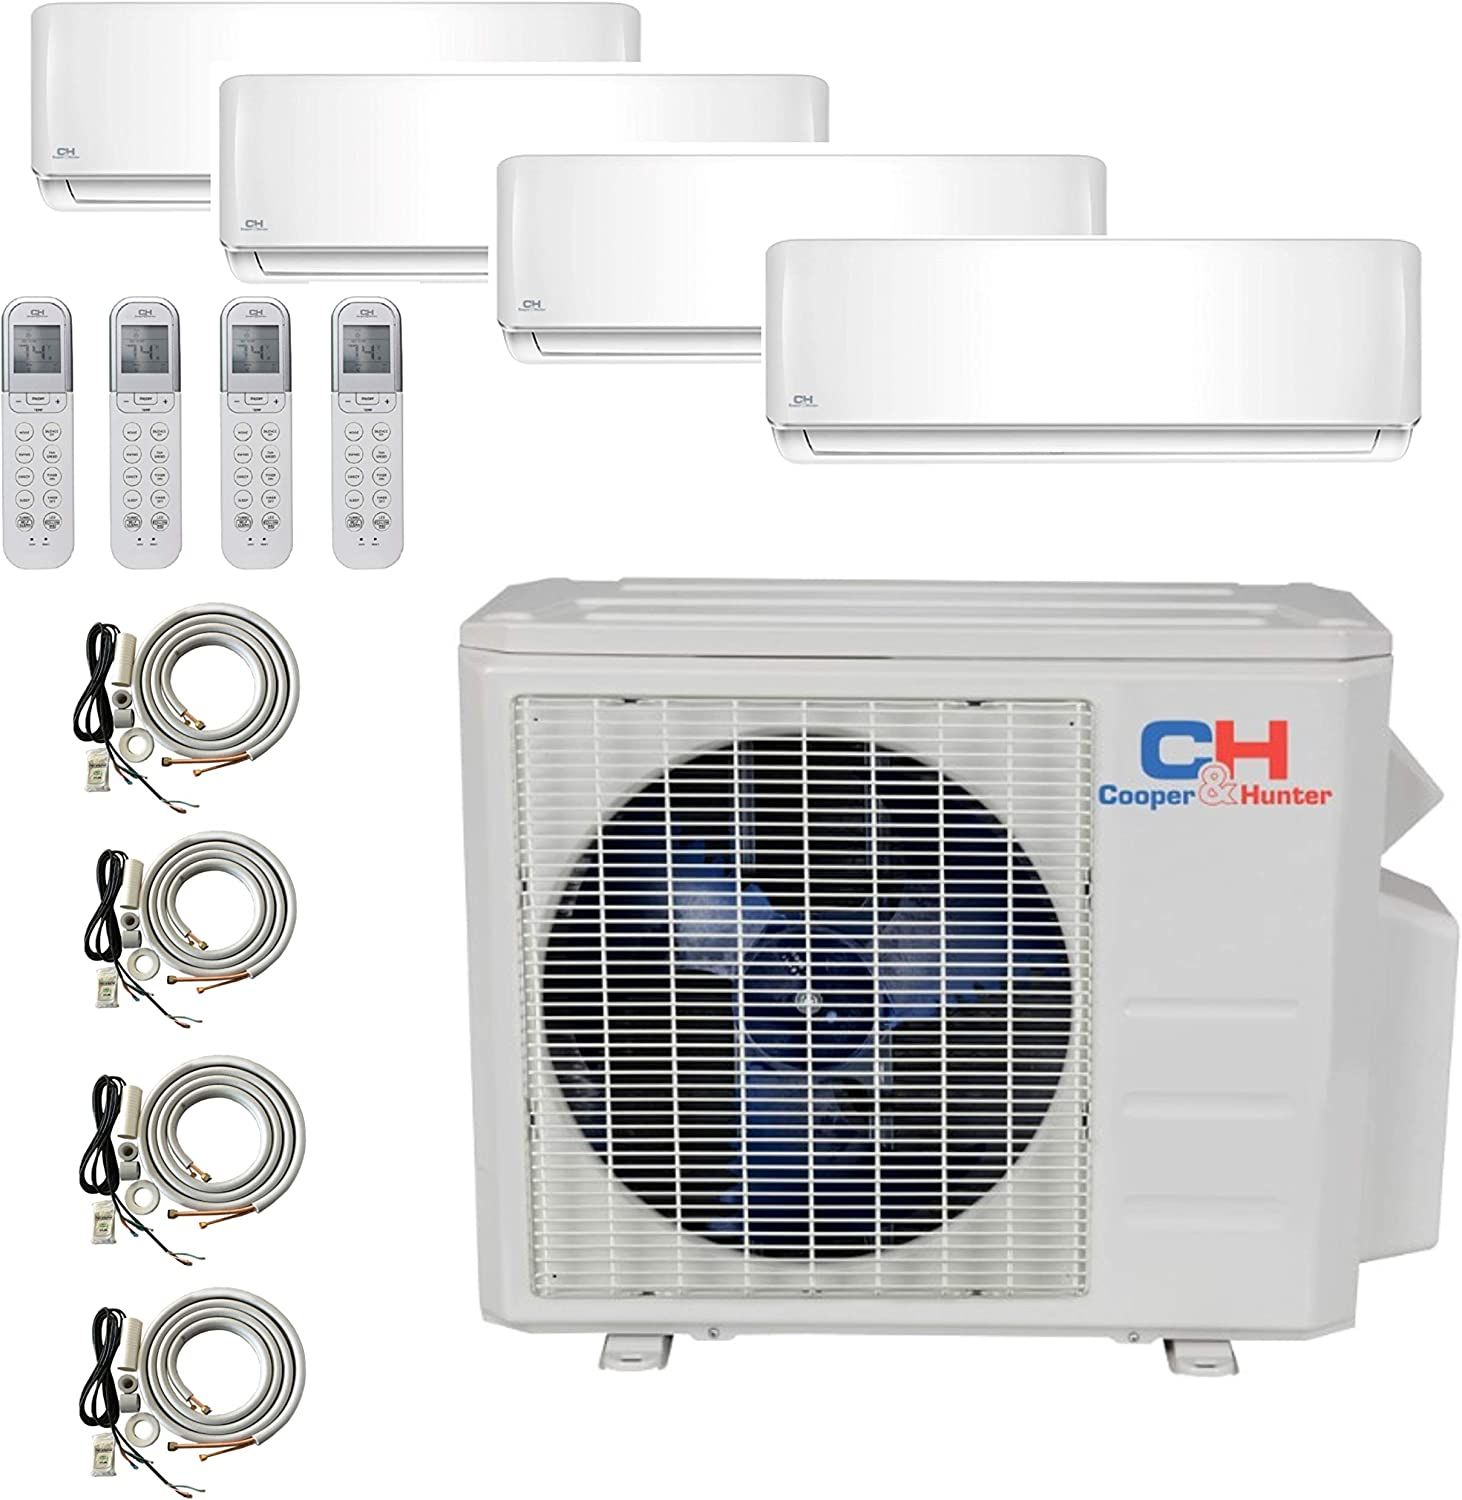 COOPER AND HUNTER 4 Zone Mini Split - 9000 + 9000 + 9000 + 18000 - Ductless Air Conditioner - Pre-Charged Quad Zone Mini Split - Four 25' Linesets - Premium Quality - USA Parts & Support